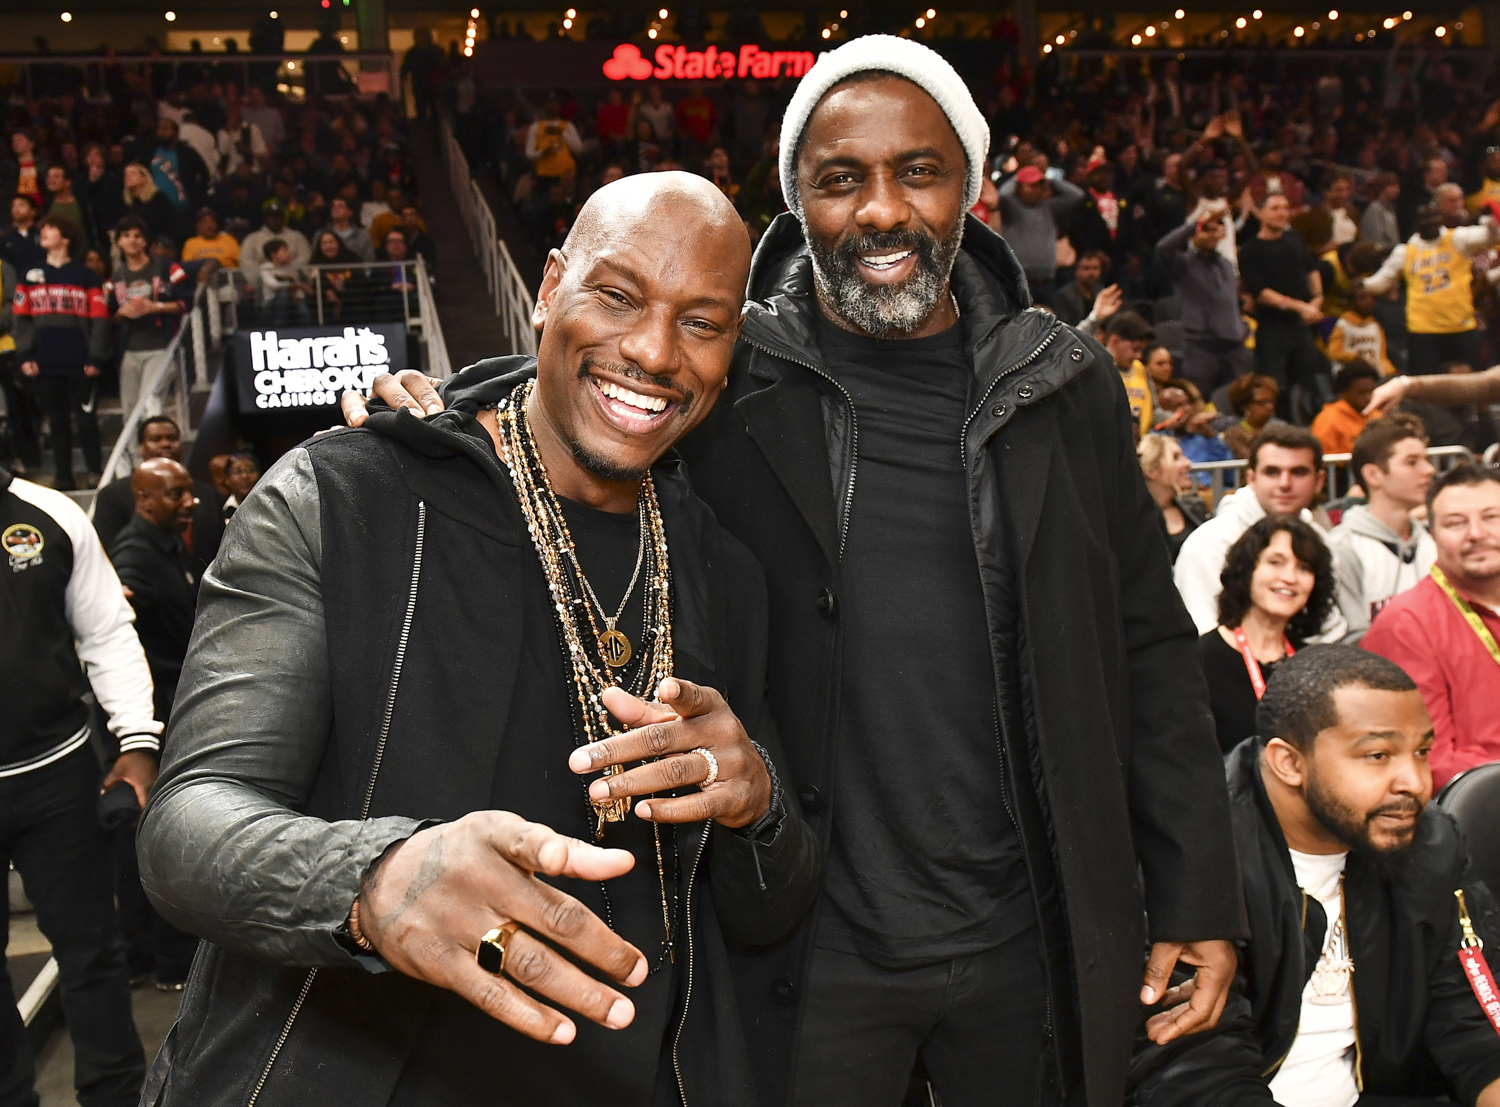 Tyrese Gibson and Idris Elba